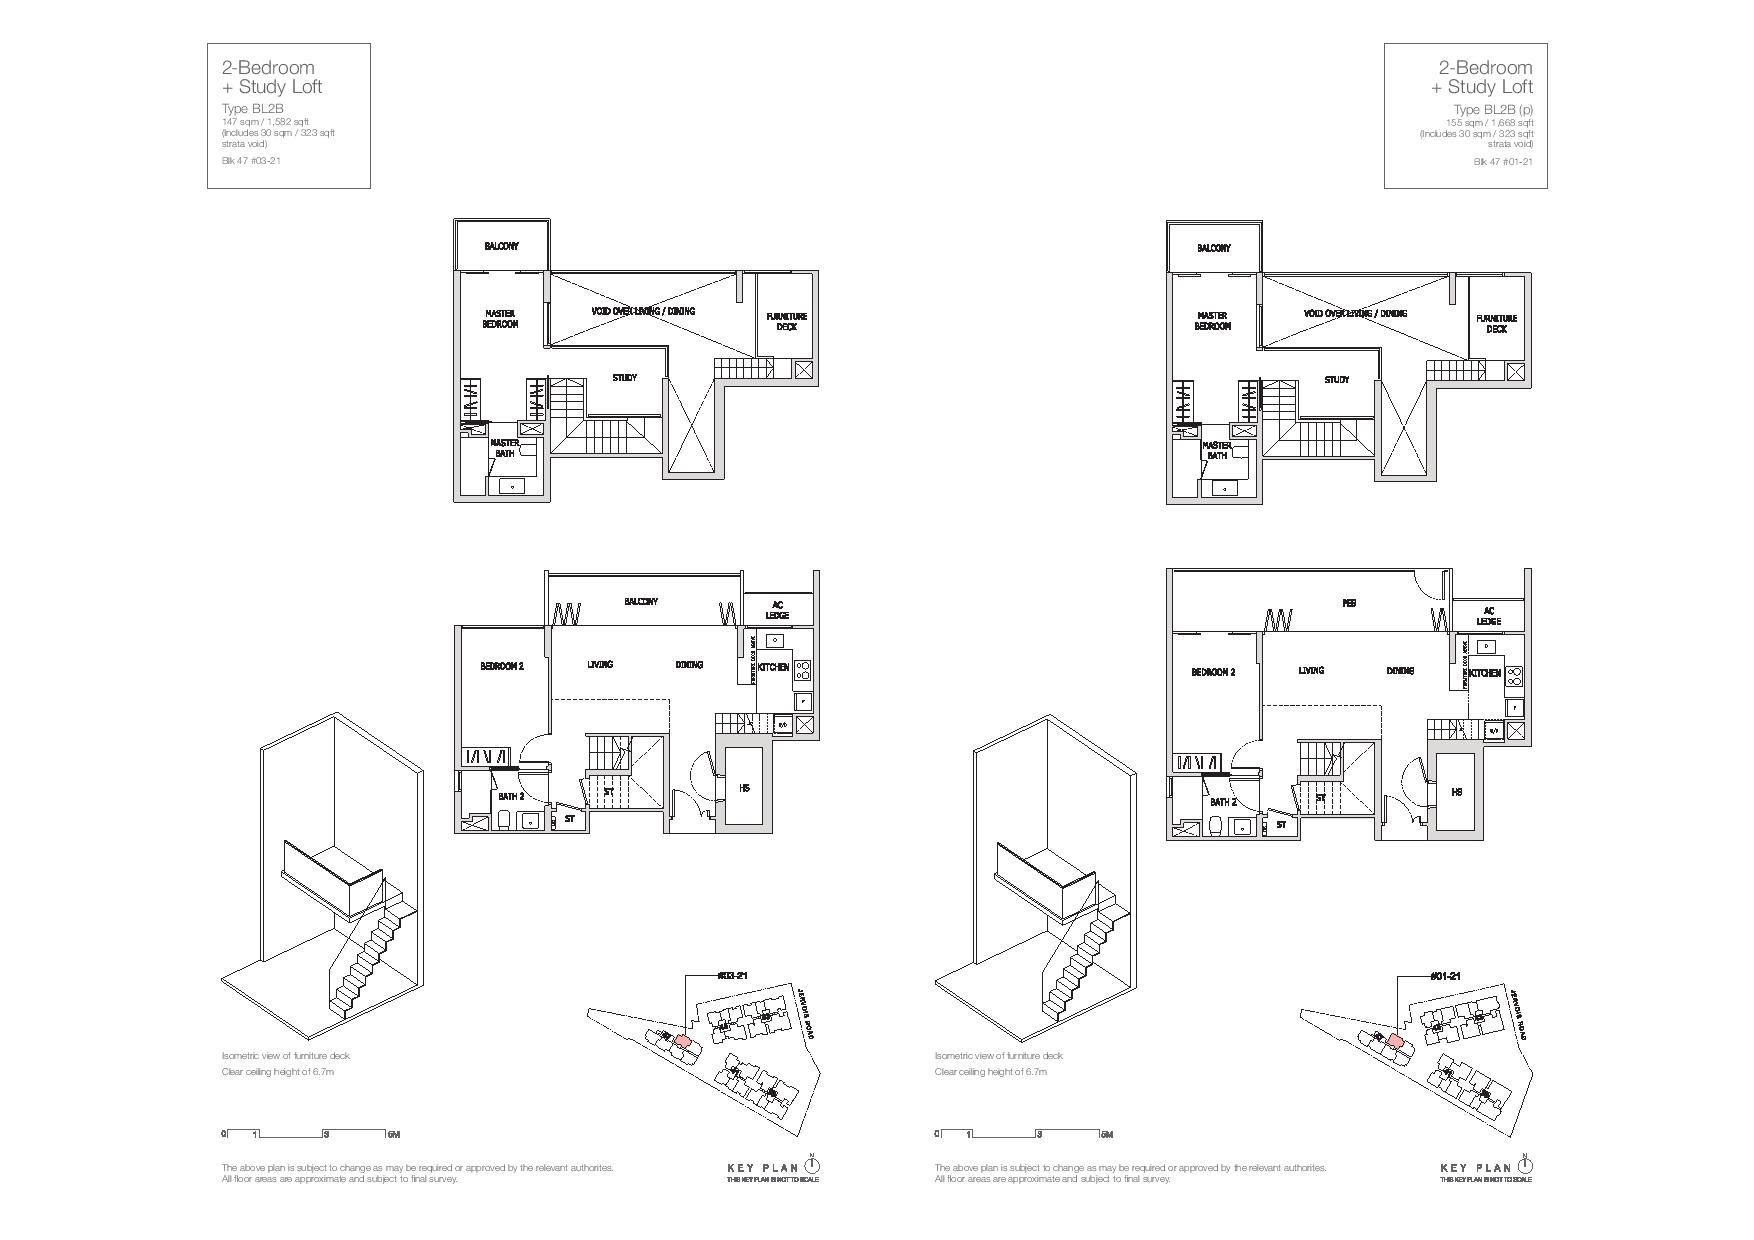 Mon Jervois 2 Bedroom + Study Floor Plans Type Type BL2B, BL2B(p)